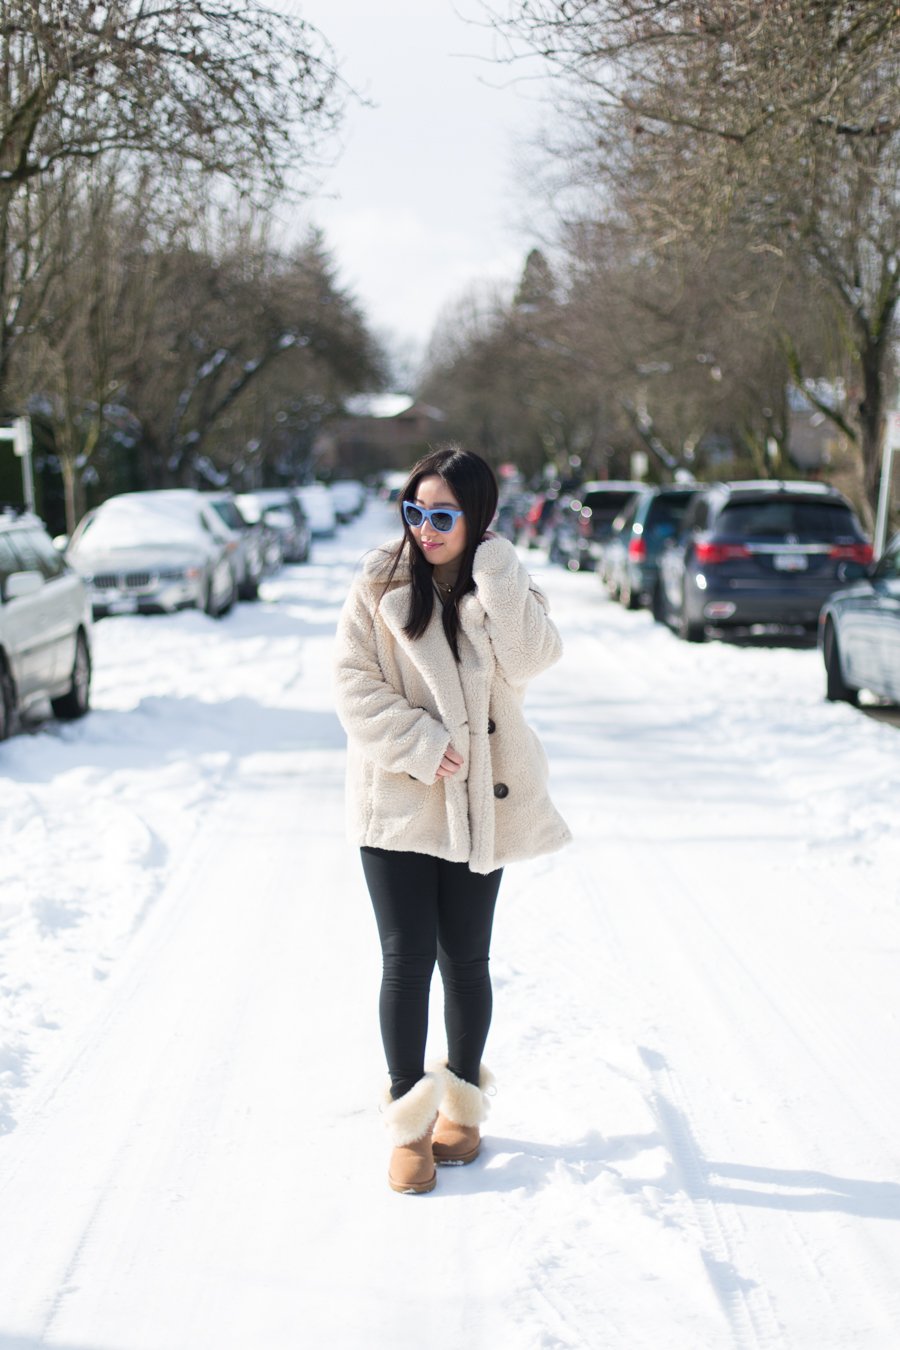 Coziest outfit ever: Free People Teddy Coat & Ugg Bailey